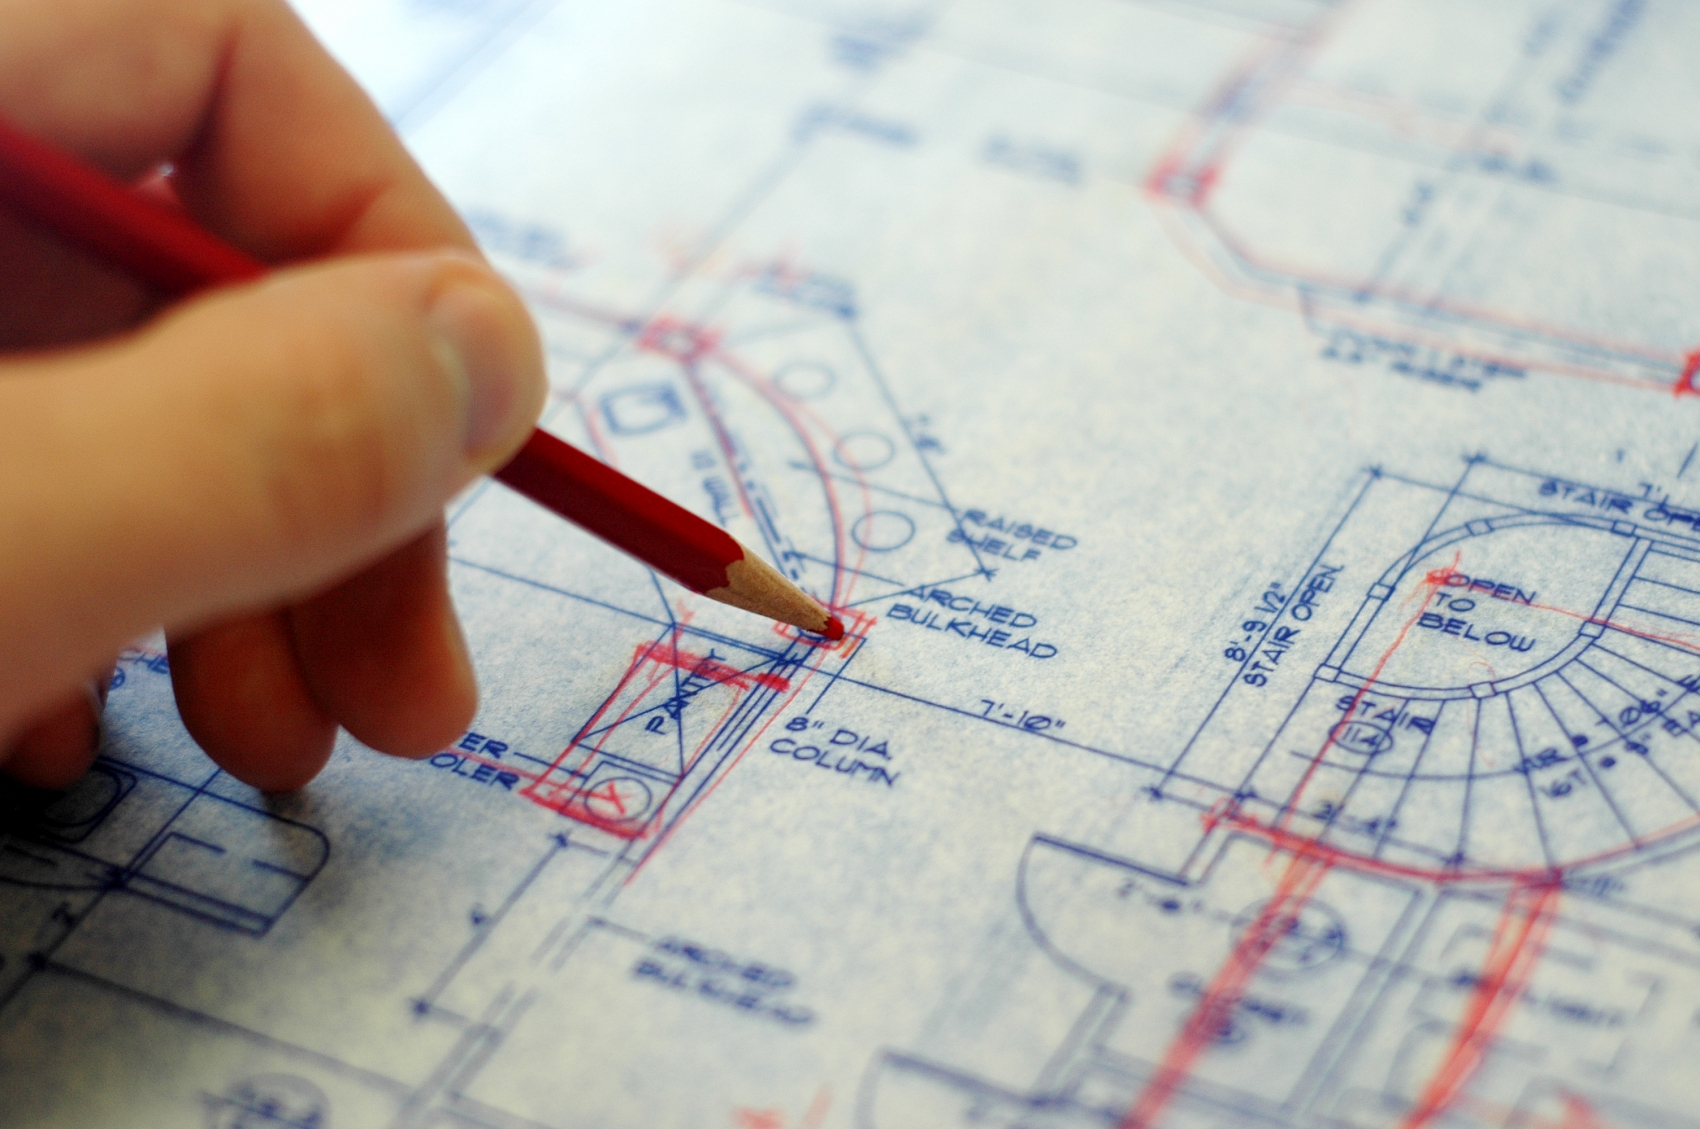 rde-residential_design_experience_constructability_plan_site_analysis